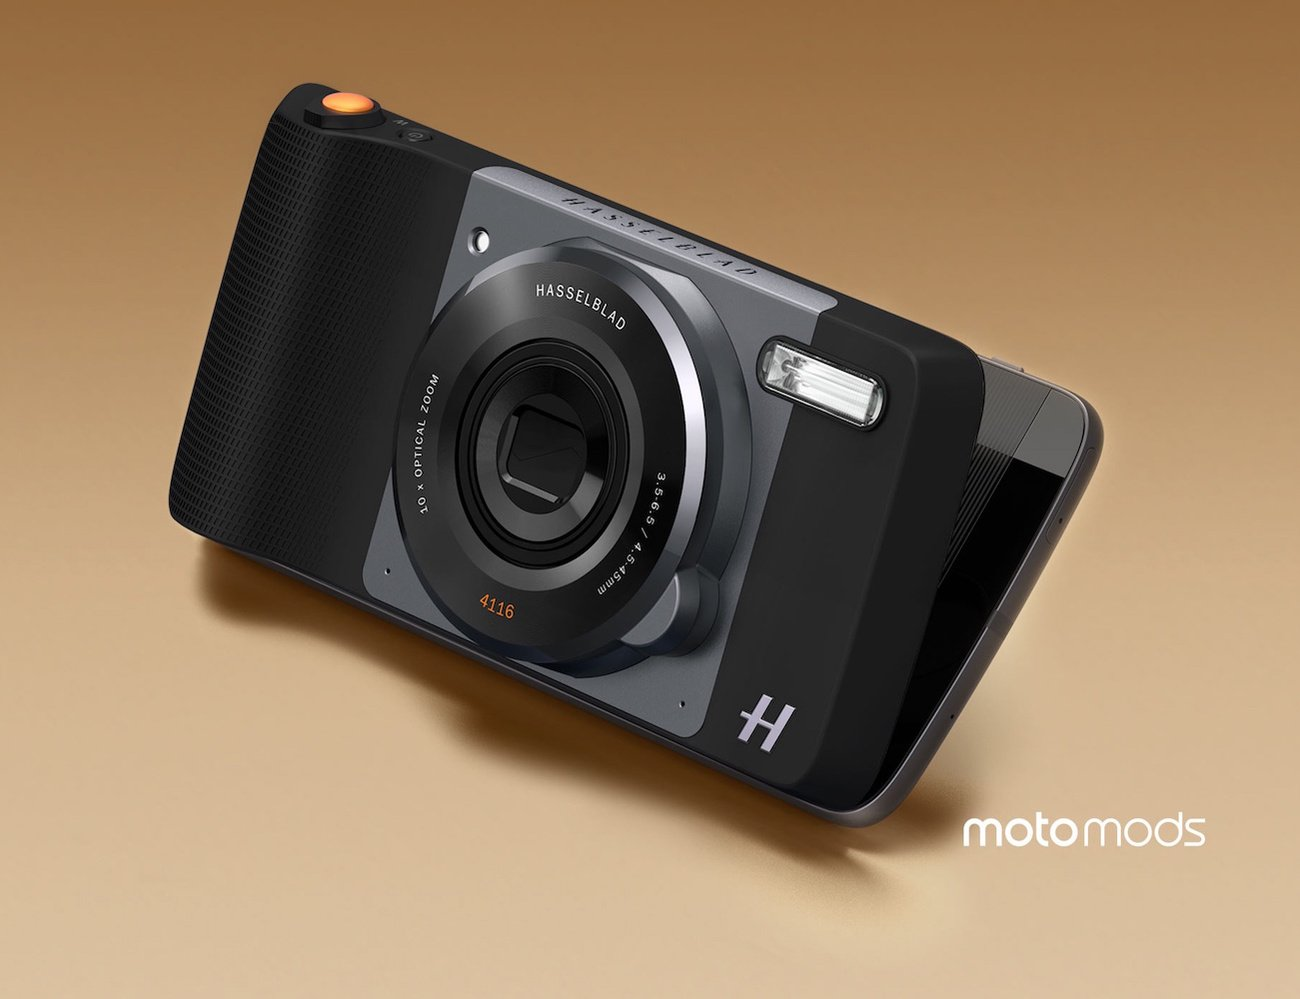 True+Zoom+MotoMod+Lens+For+Moto+Z+By+Motorola+X+Hasselblad